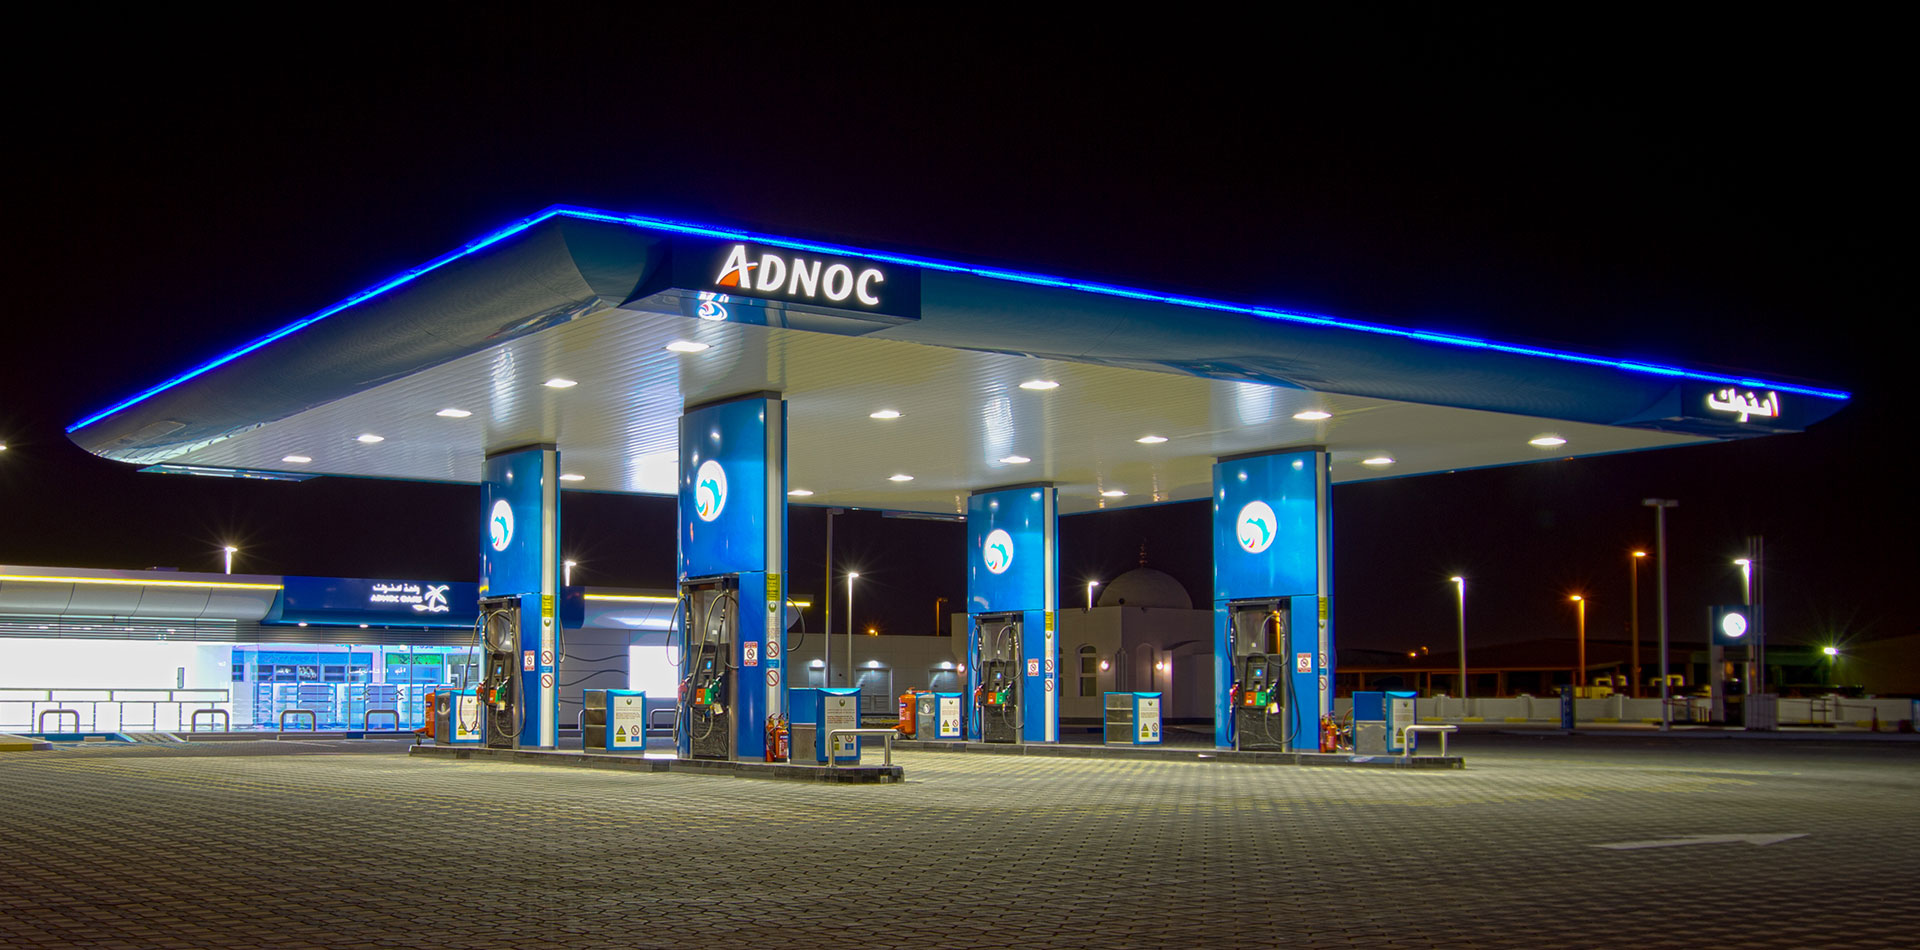 ADNOC petrol station with Blade Signage